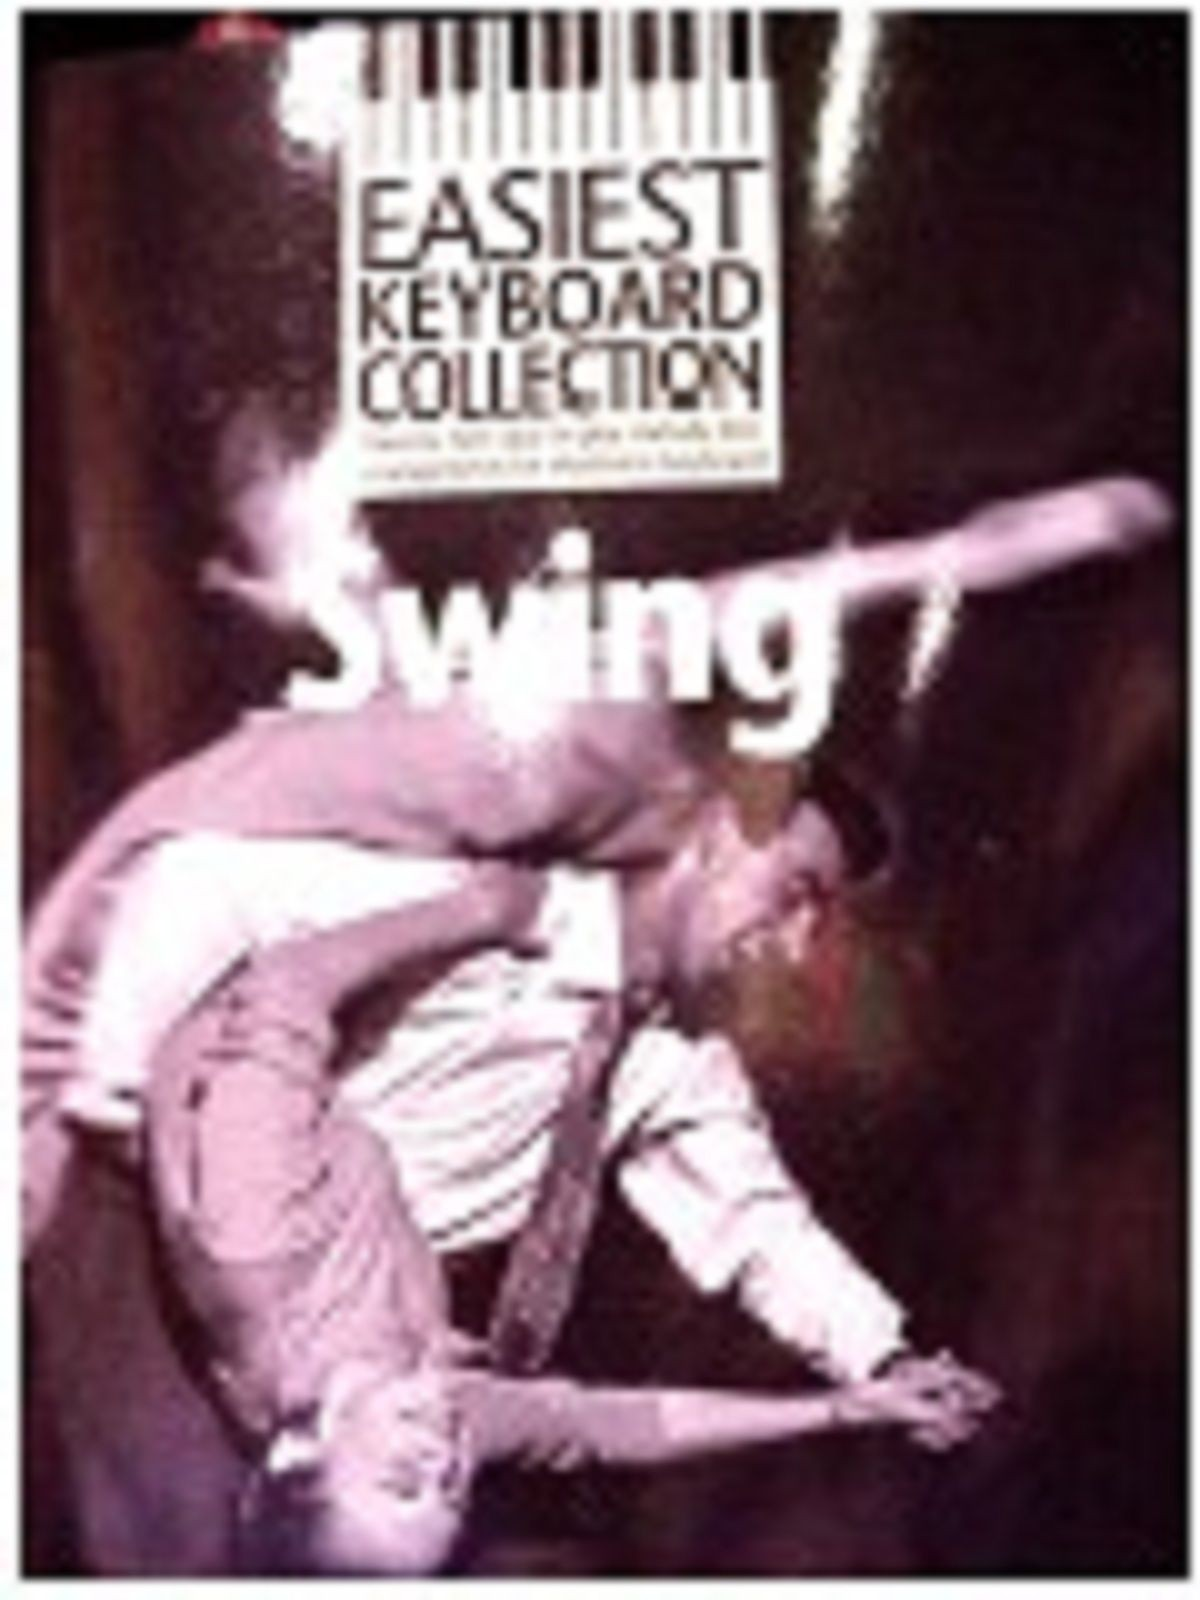 Easiest Keyboard Collection Swing Sheet Music Book Electronic Chords Lyrics S159